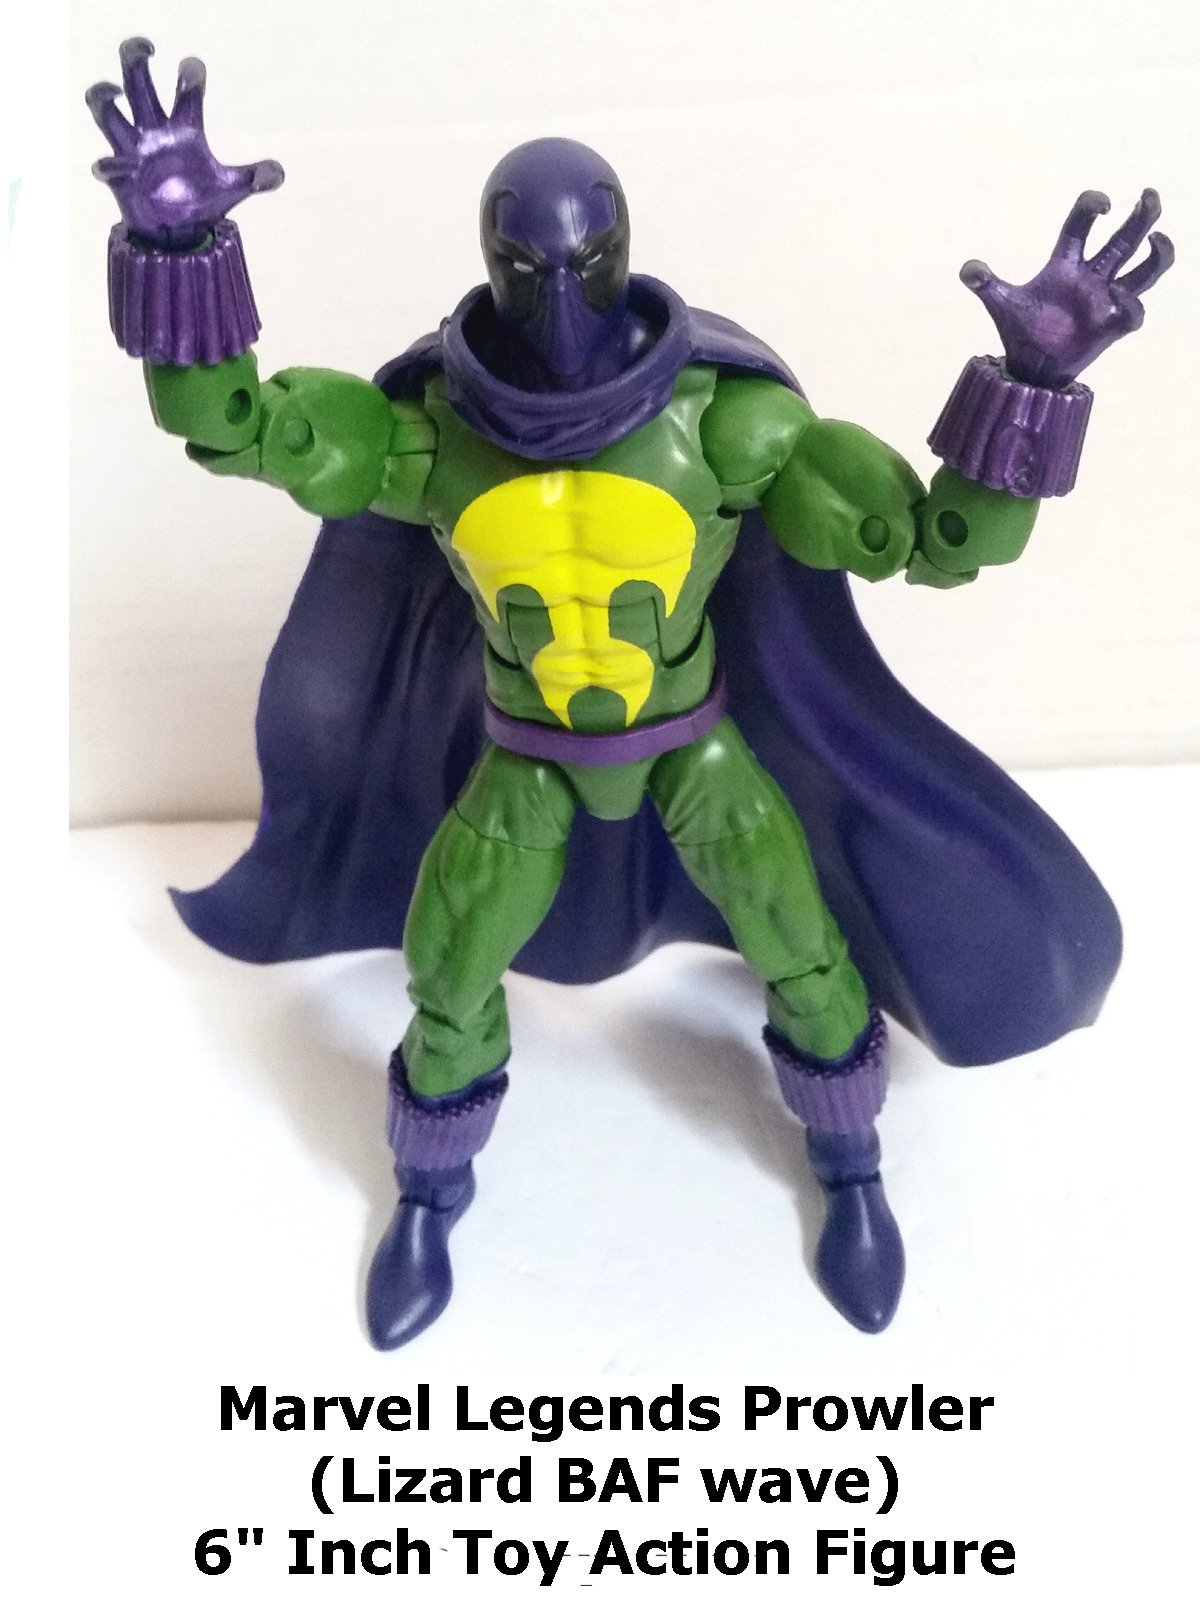 "Review: Marvel Legends Prowler (Lizard BAF wave) 6"" Inch Toy Action Figure"